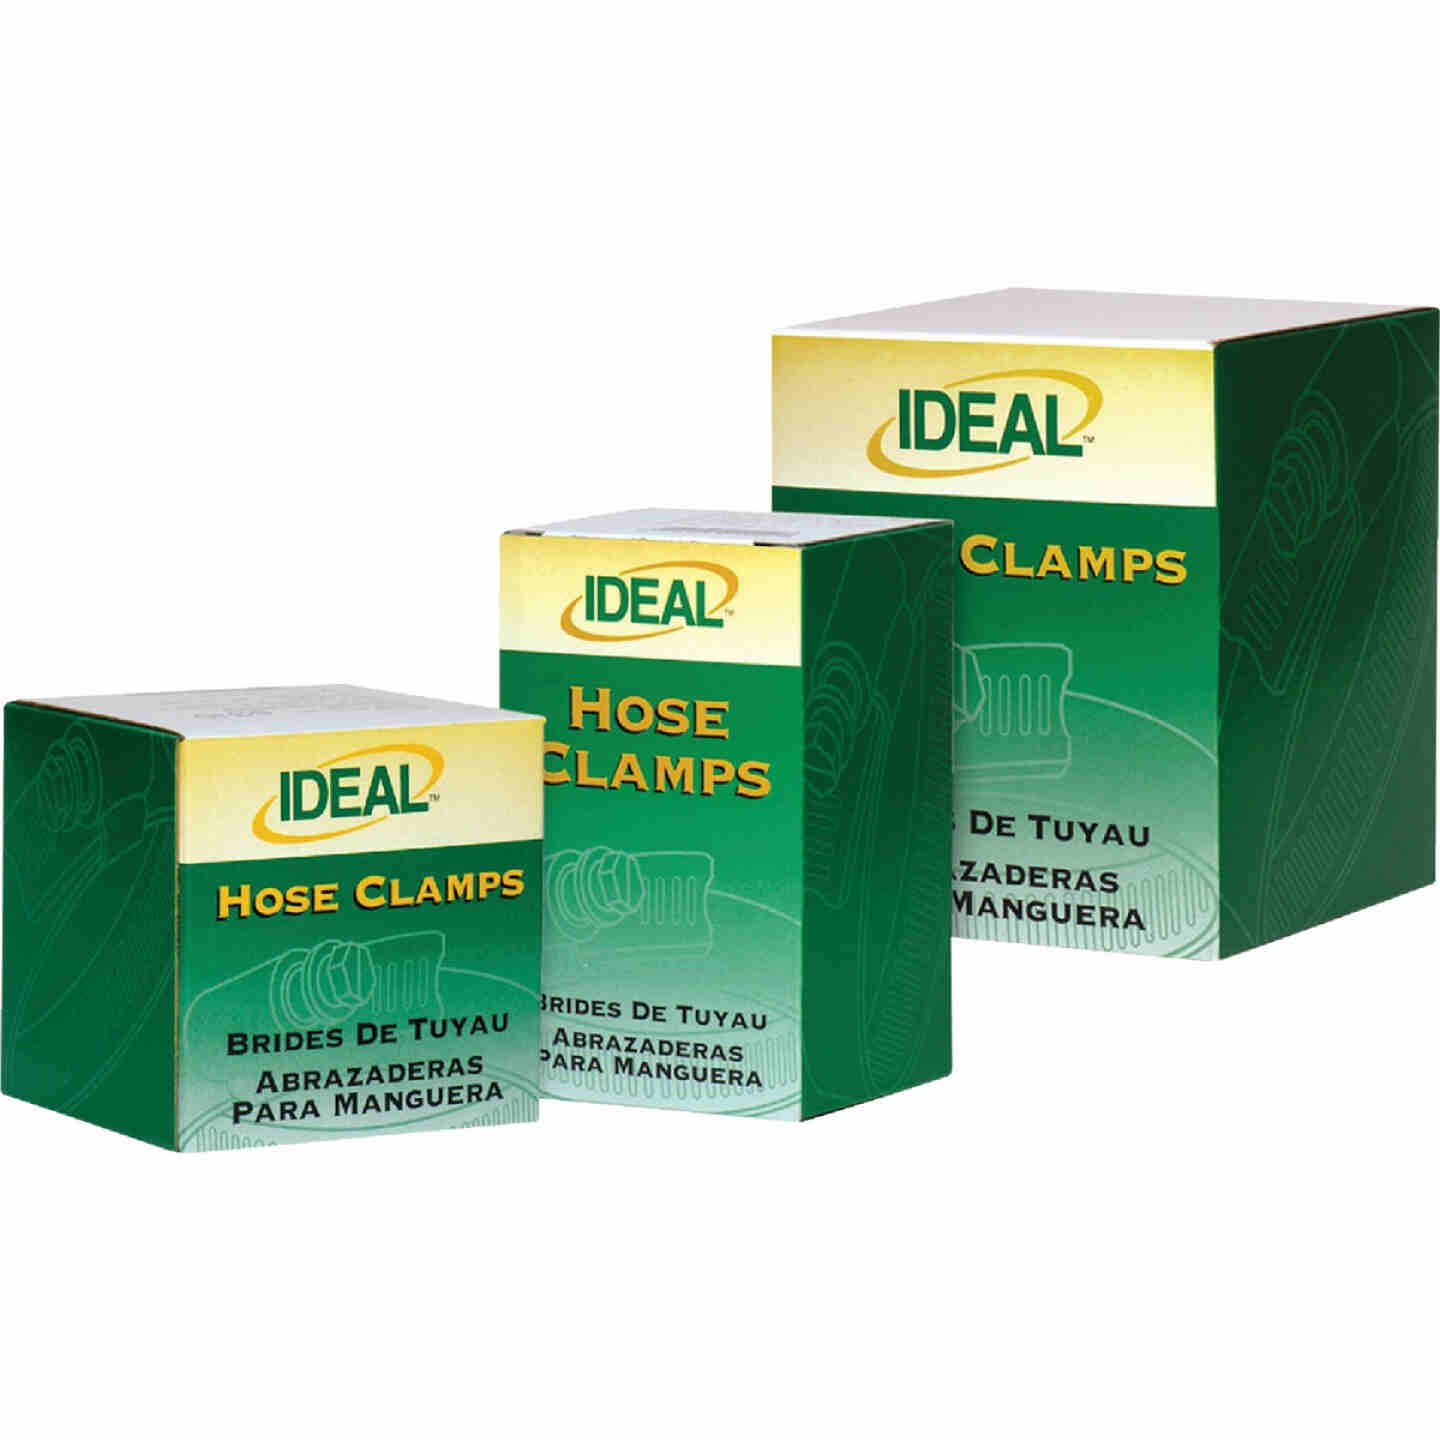 Ideal 2-1/2 In. - 3-1/2 In. 67 All Stainless Steel Hose Clamp Image 2